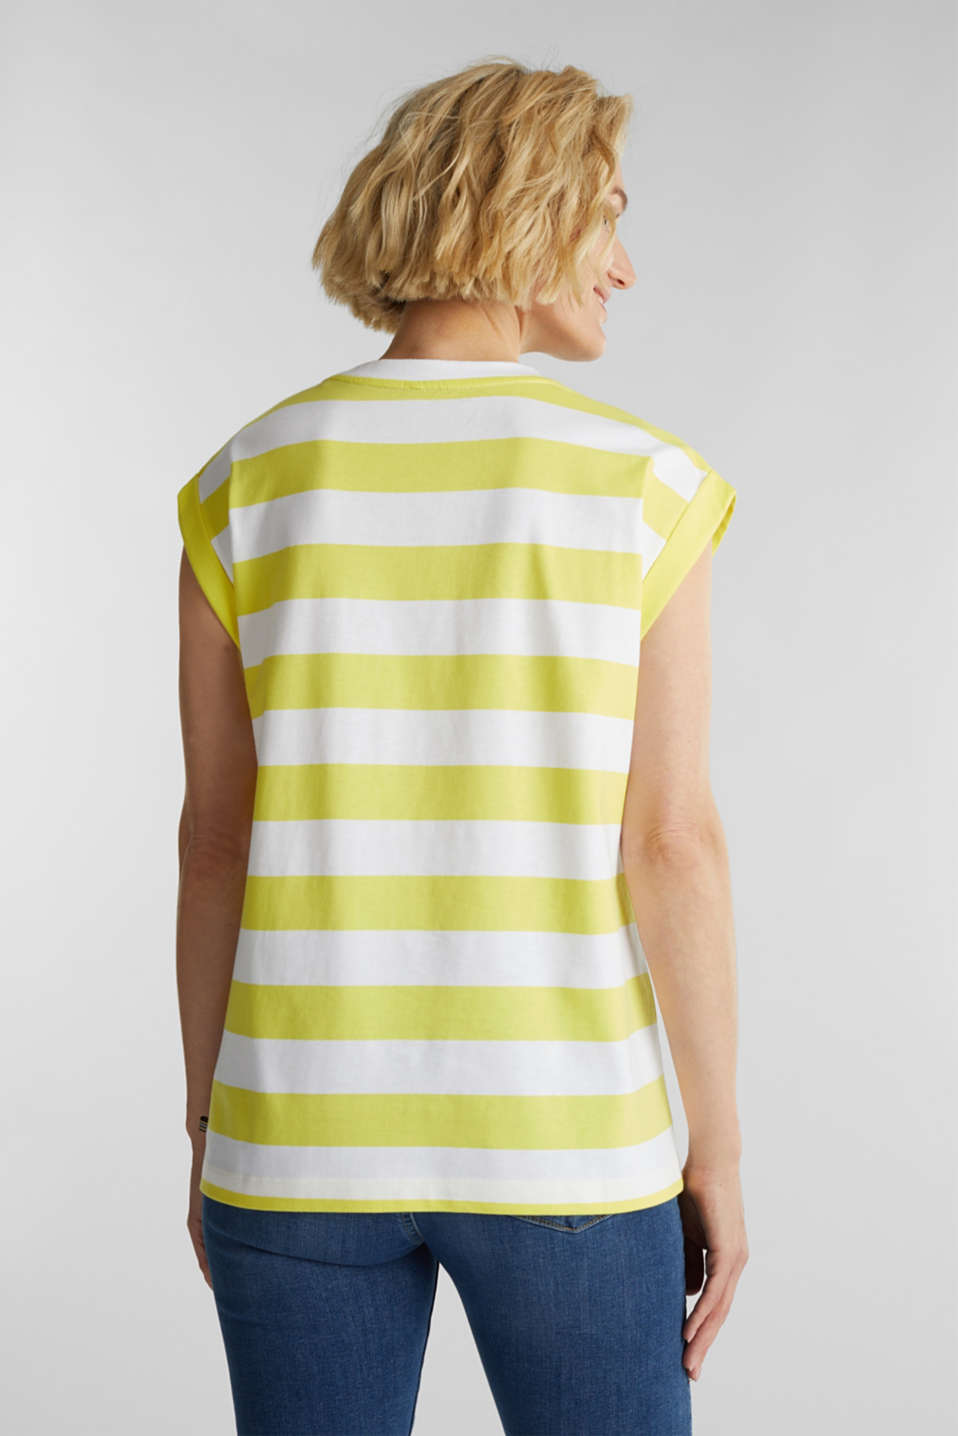 Striped T-shirt, 100% cotton, BRIGHT YELLOW 4, detail image number 3